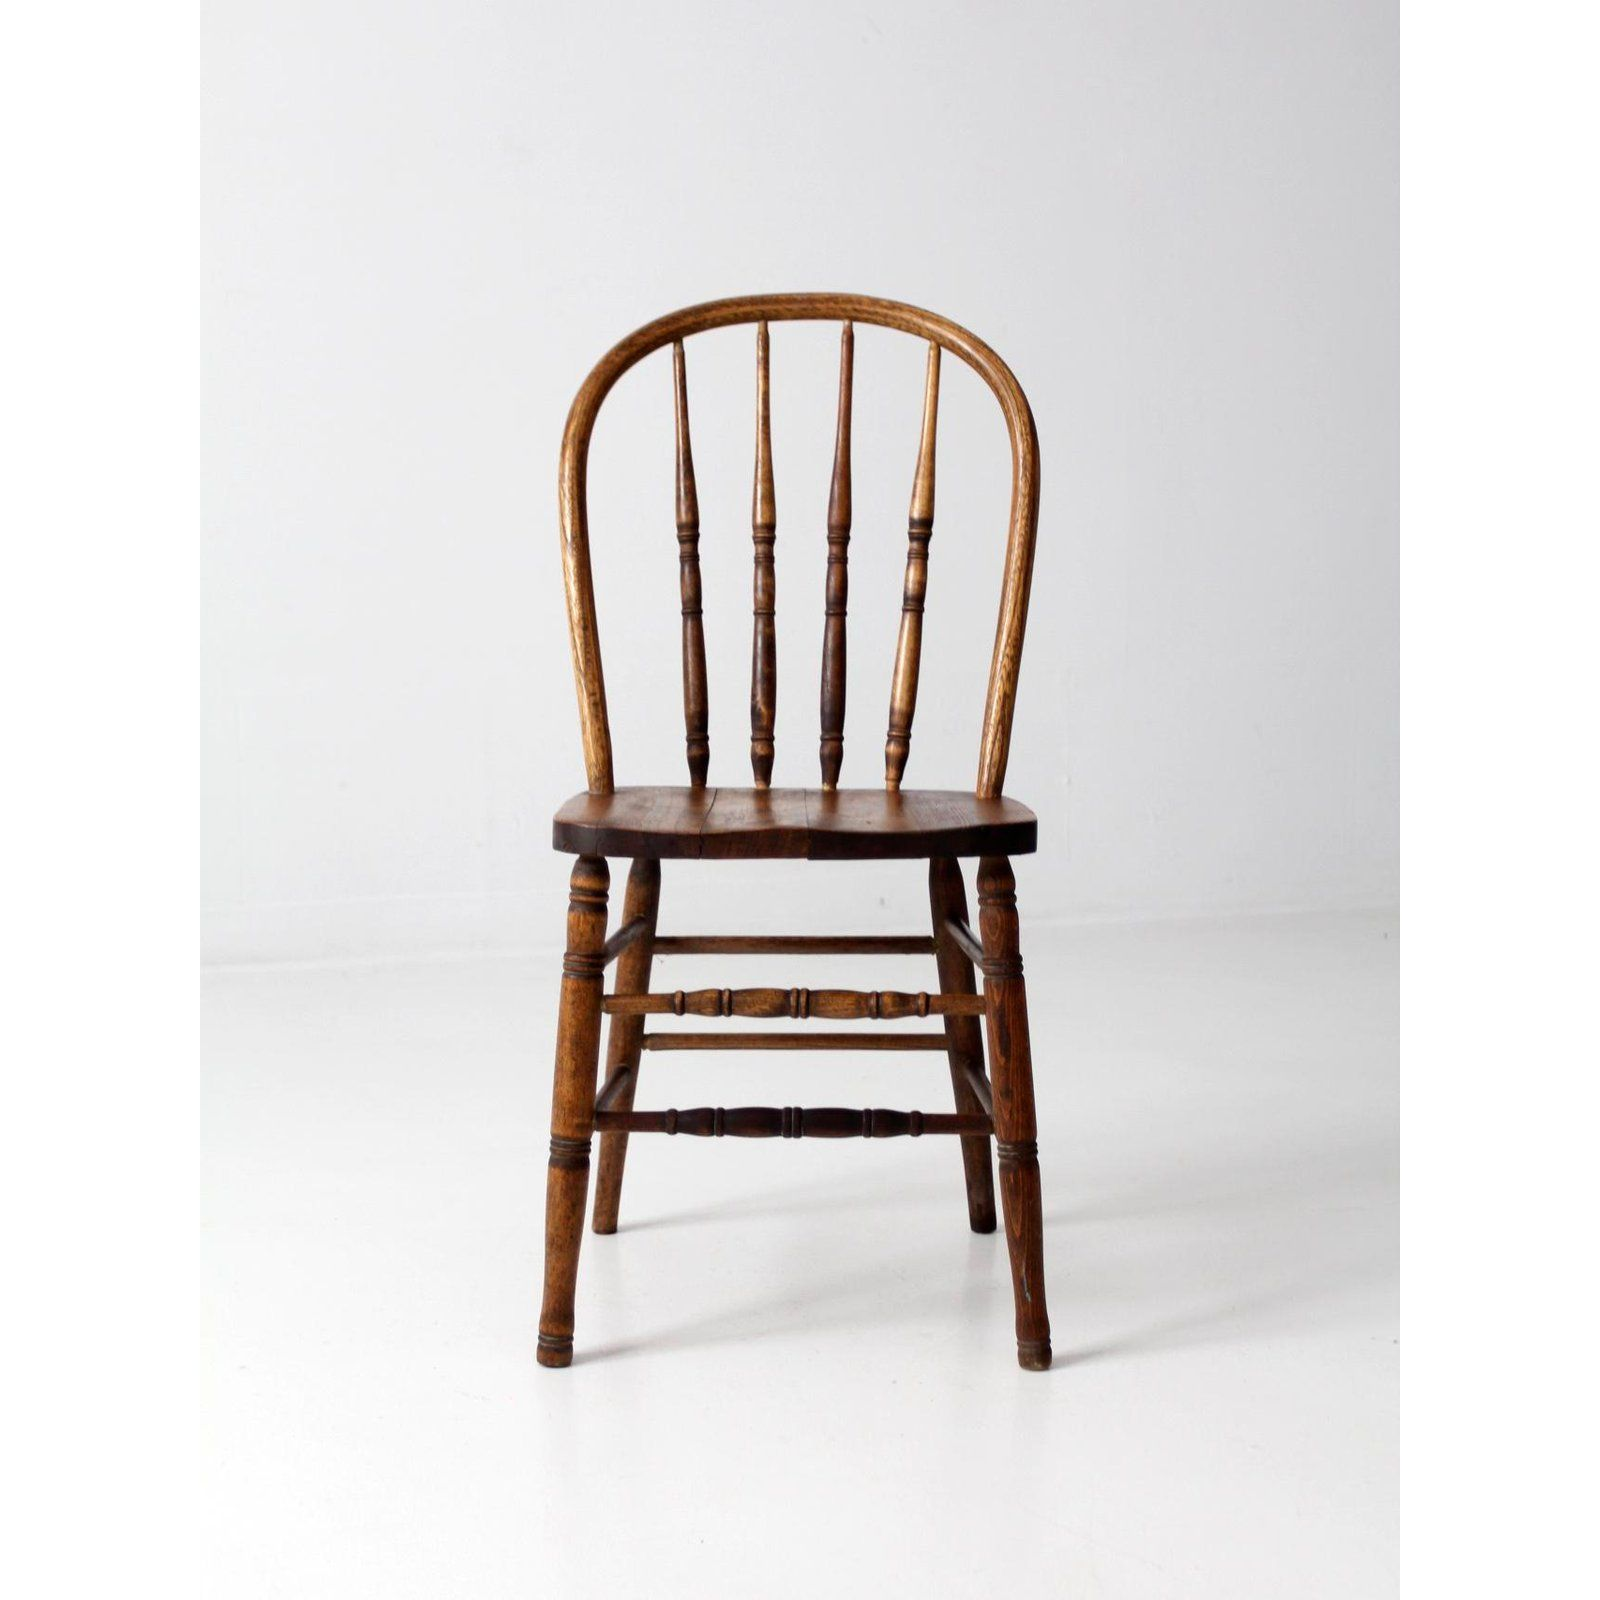 Cottage Antique Spindle Back Dining Chair For Sale Image 3 Of 9 Dining Chairs Chair Wooden Dining Room Chairs